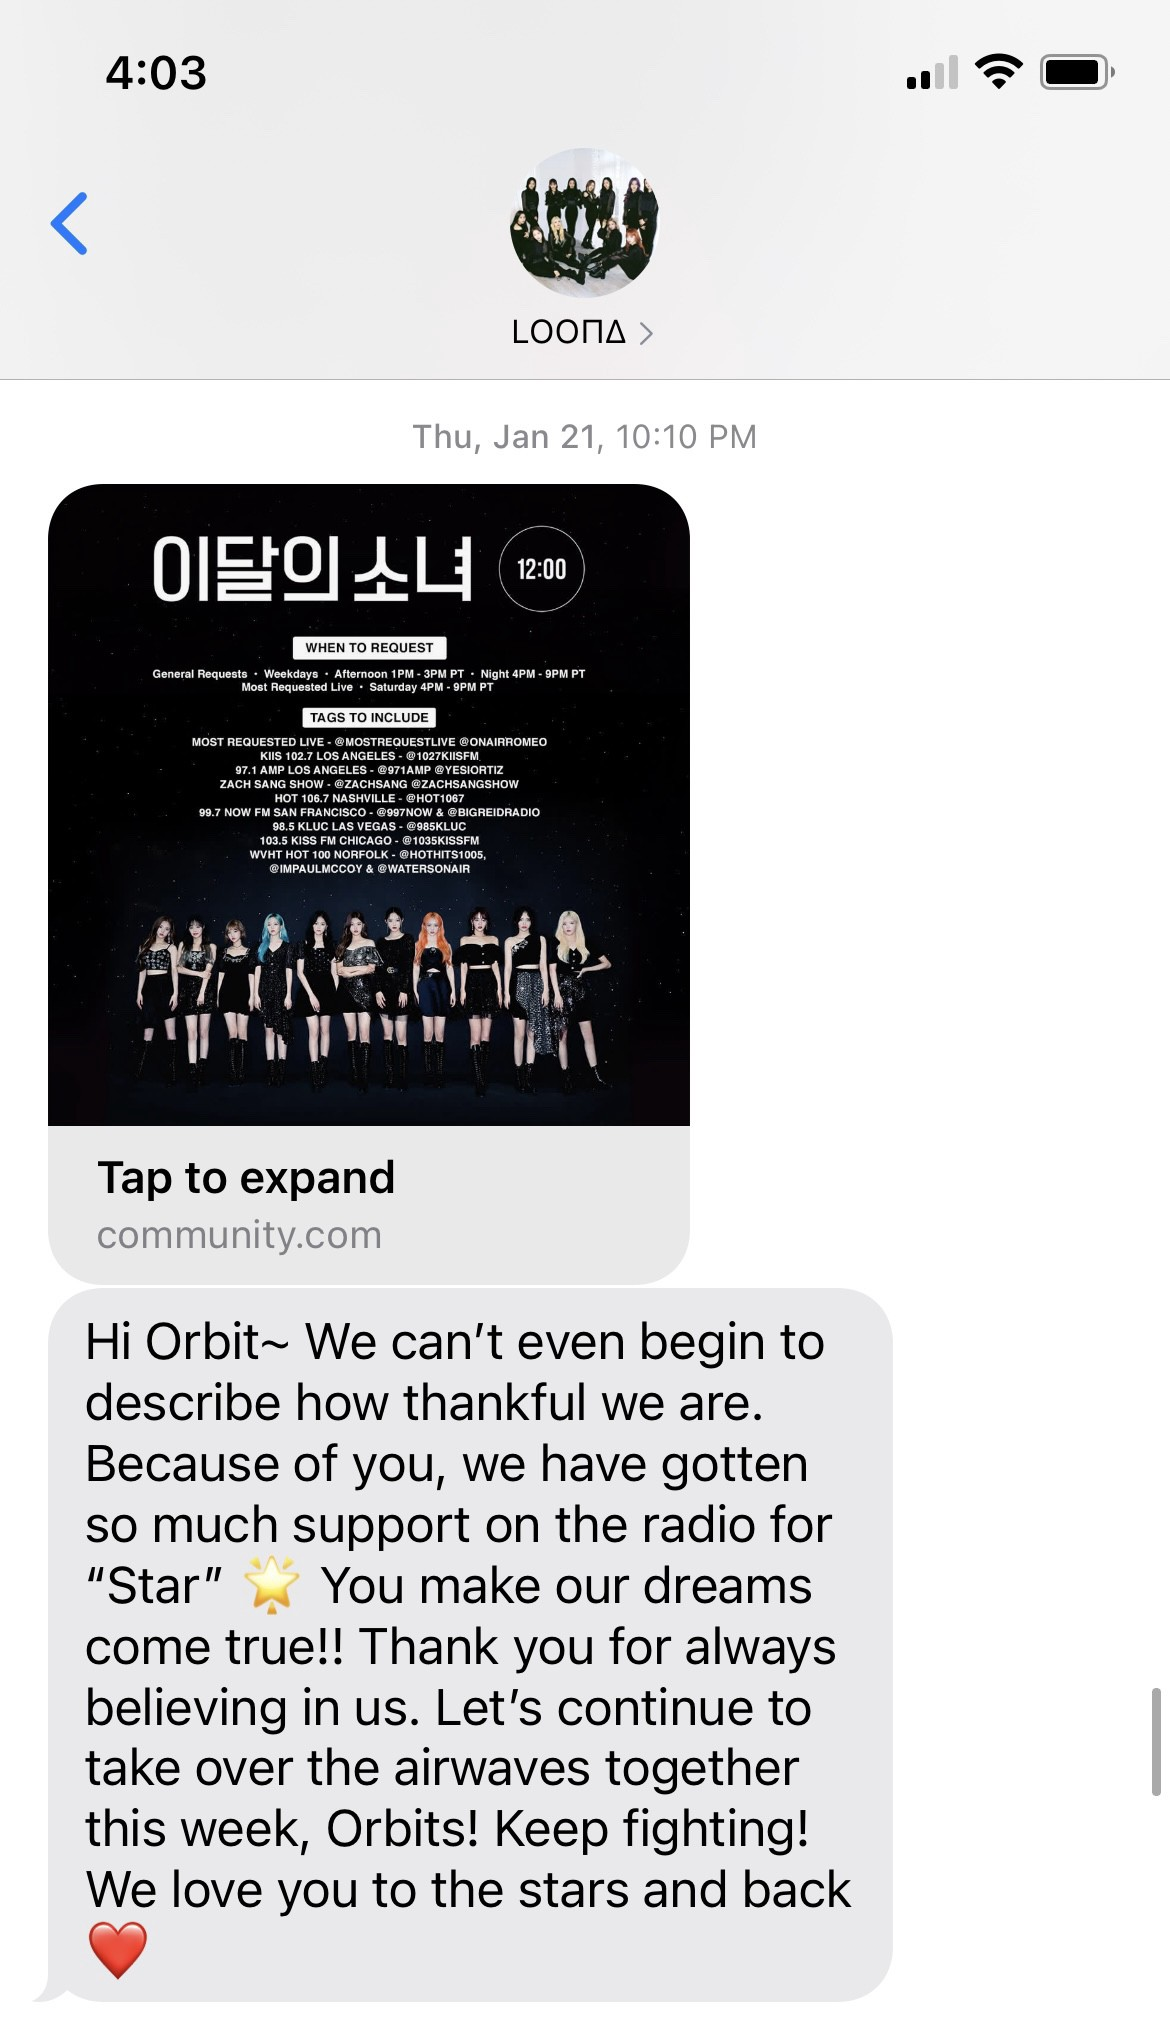 """A text reading """"Hi Orbit~ We can't even begin to describe how thankful we are. Because of you, we have gotten so much support on the radio for """"Star"""" 🌟 You make our dreams come true!! Thank you for always believing in us. Let's continue to take over the airwaves together this week, Orbits! Keep fighting! We love you to the stars and back ❤️"""" with an image containing the names and twitter handles of several radio stations"""